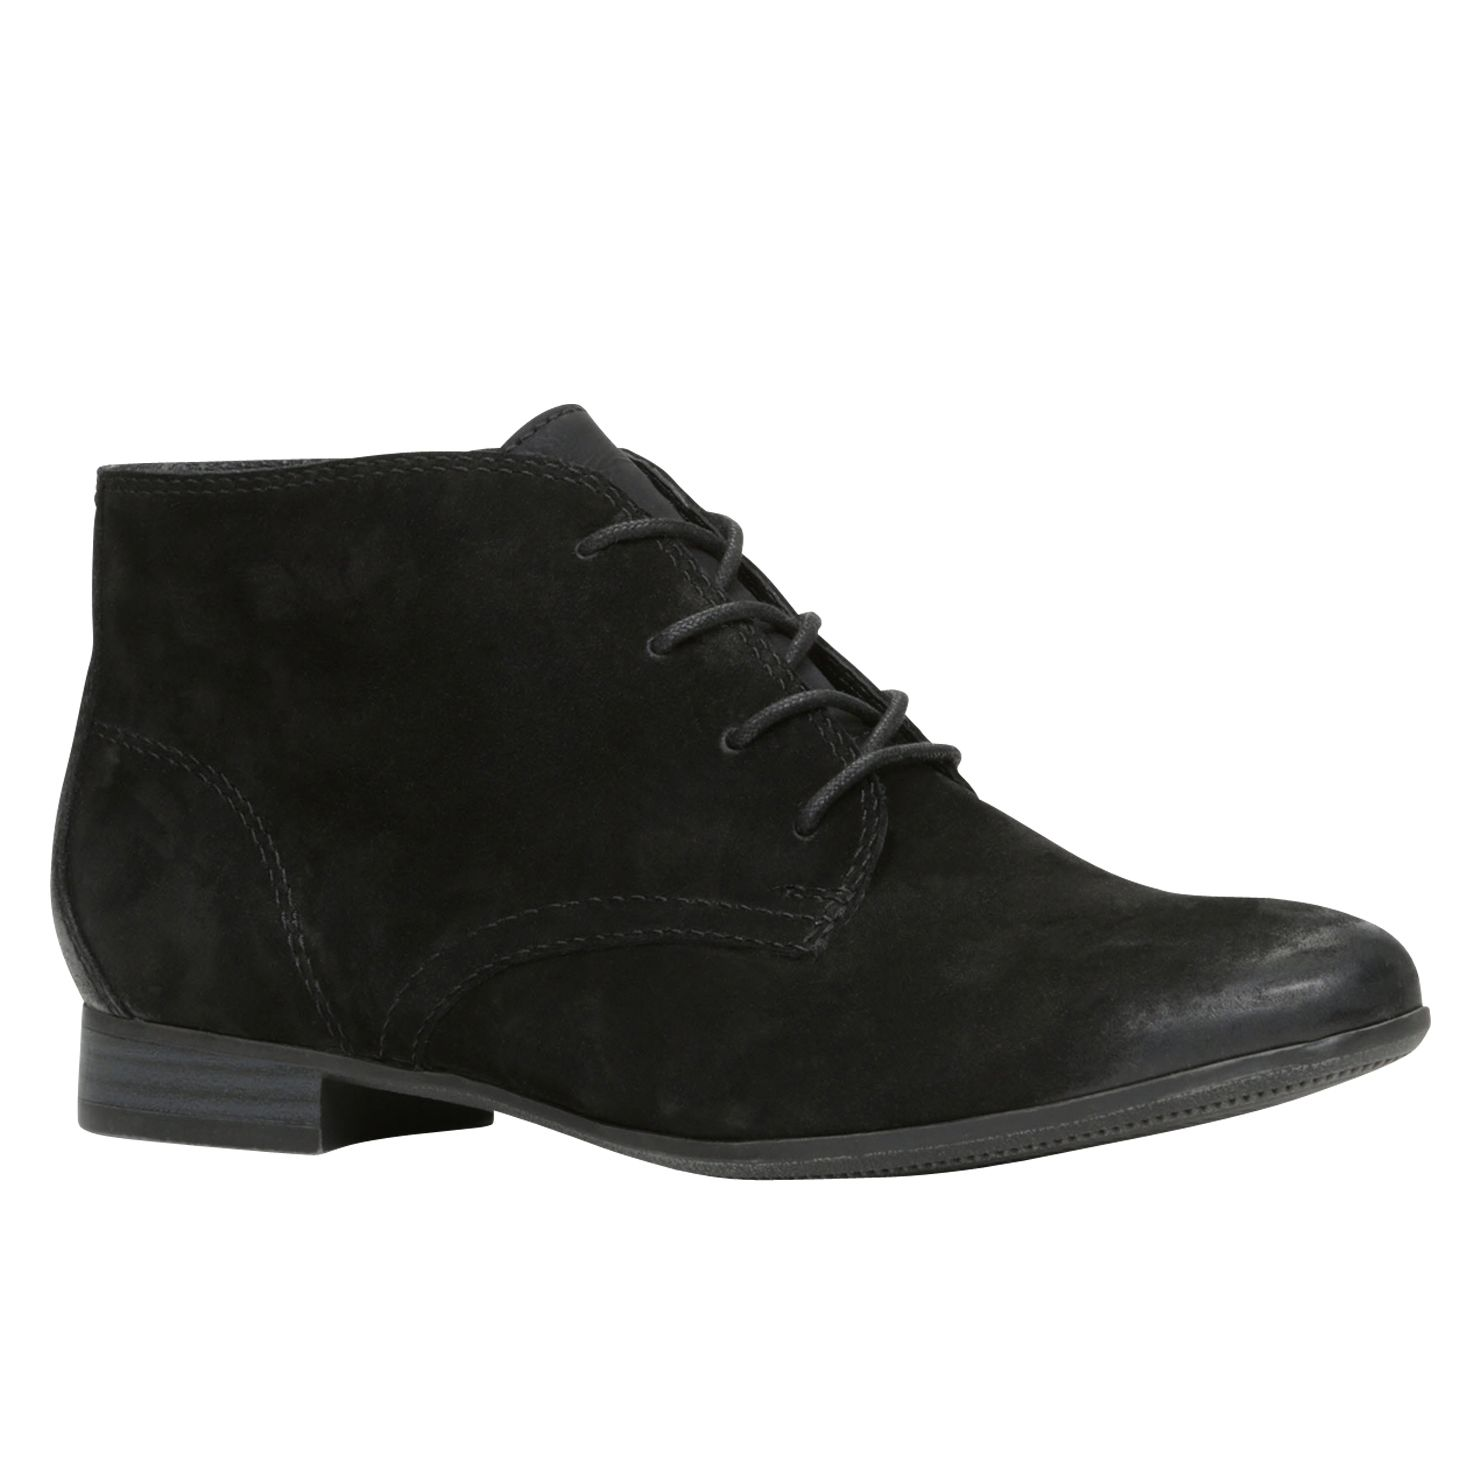 Terne lace up ankle boots